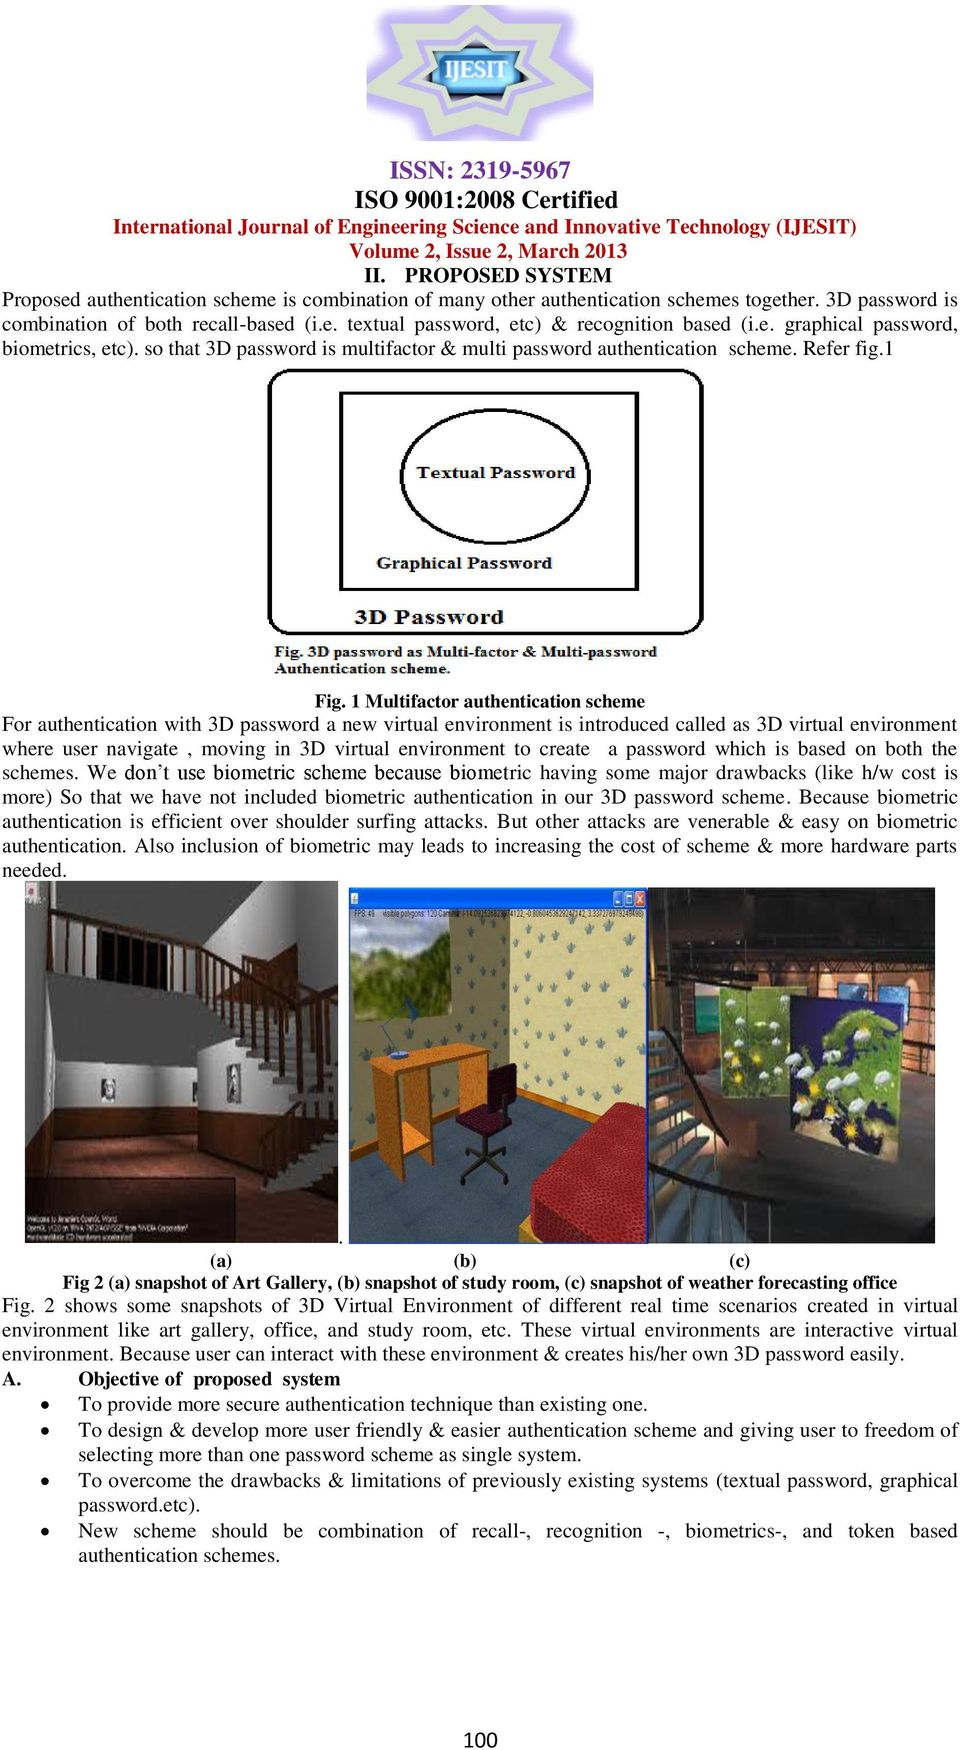 1 Multifactor authentication scheme For authentication with 3D password a new virtual environment is introduced called as 3D virtual environment where user navigate, moving in 3D virtual environment